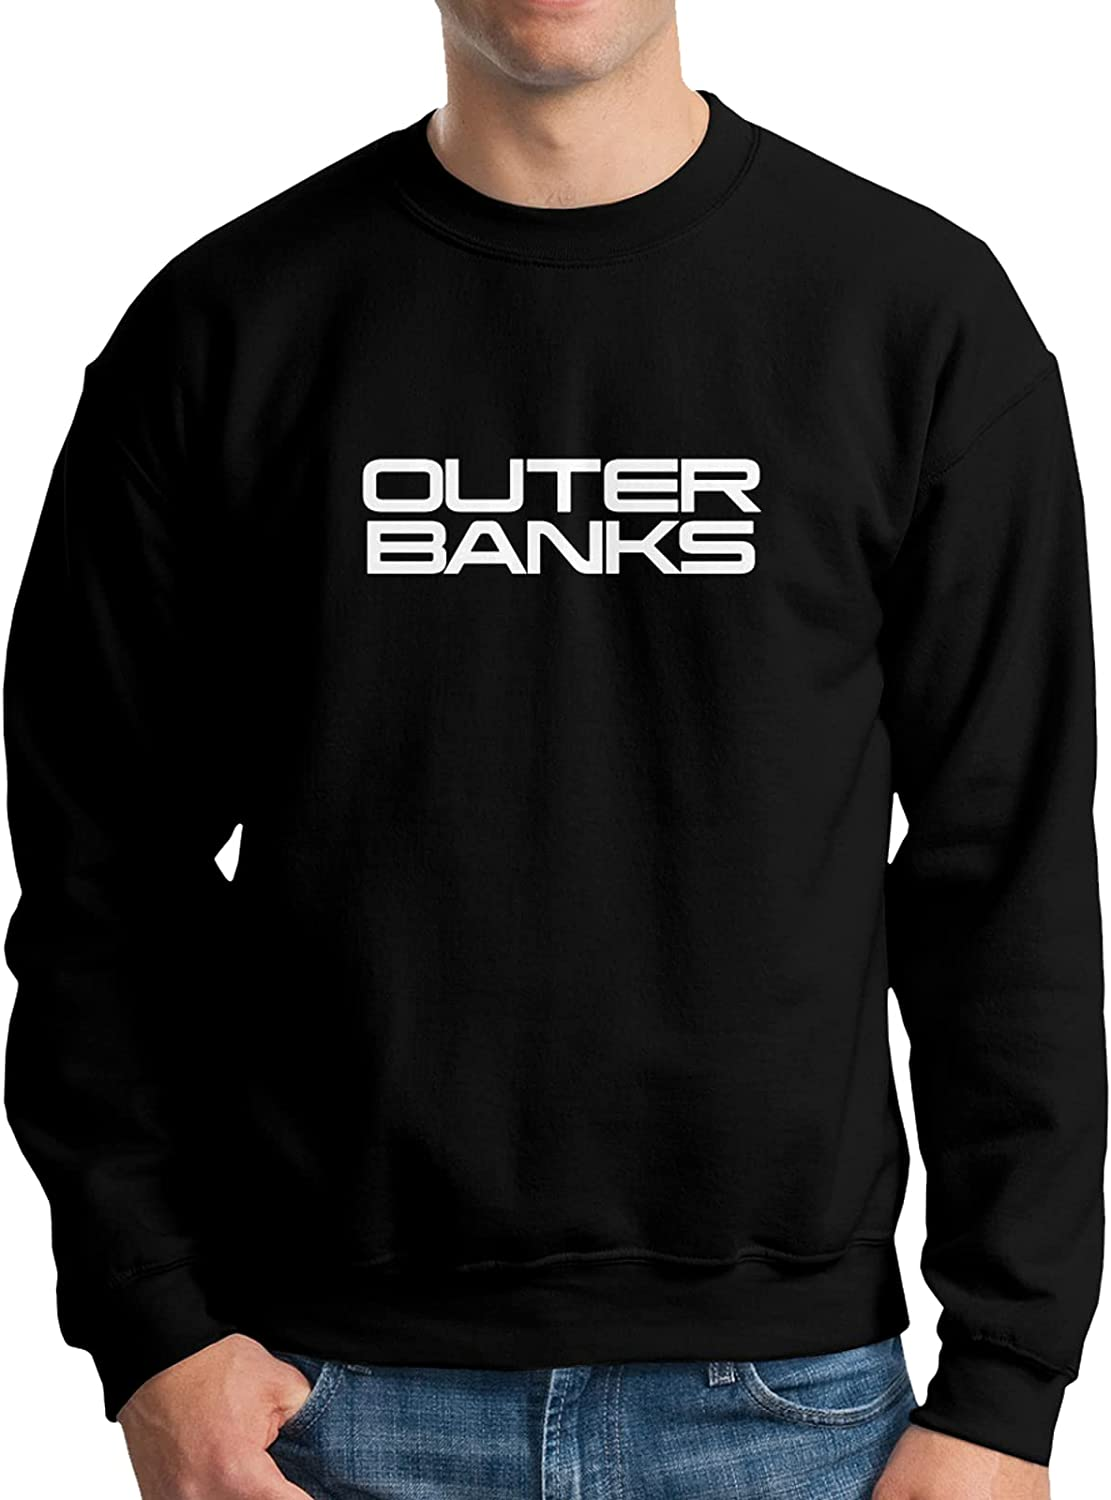 Outer Banks Mens Athletic Sweatshirt Easy-to-use Sleeve Crew T-Shirt Ne Long Fort Worth Mall